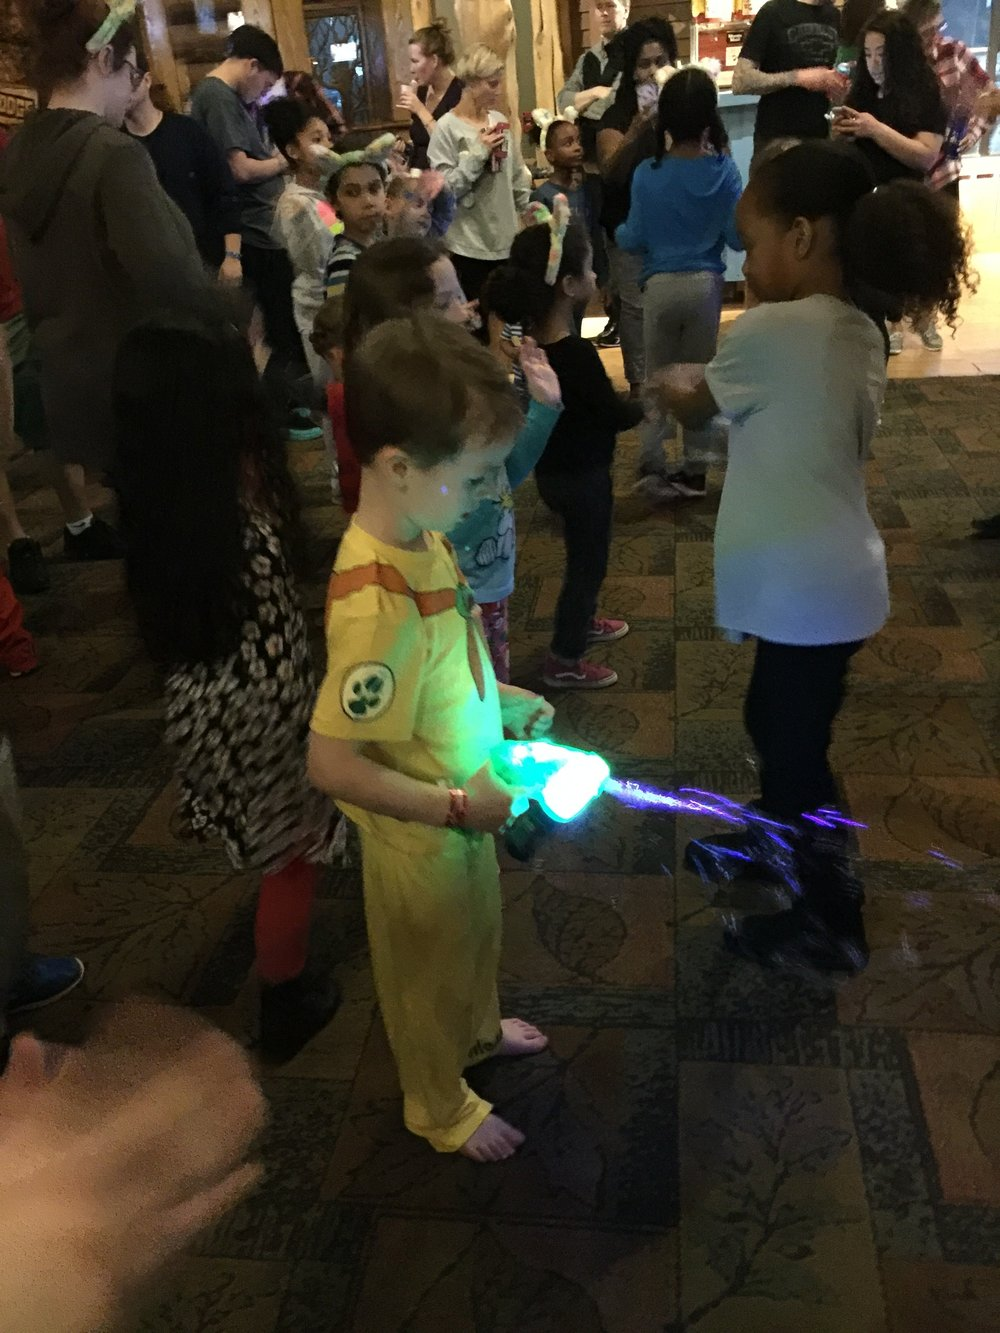 Great Wolf Lodge has all kinds of fun evening activities for children including glow in the dark putt-putt and story time.